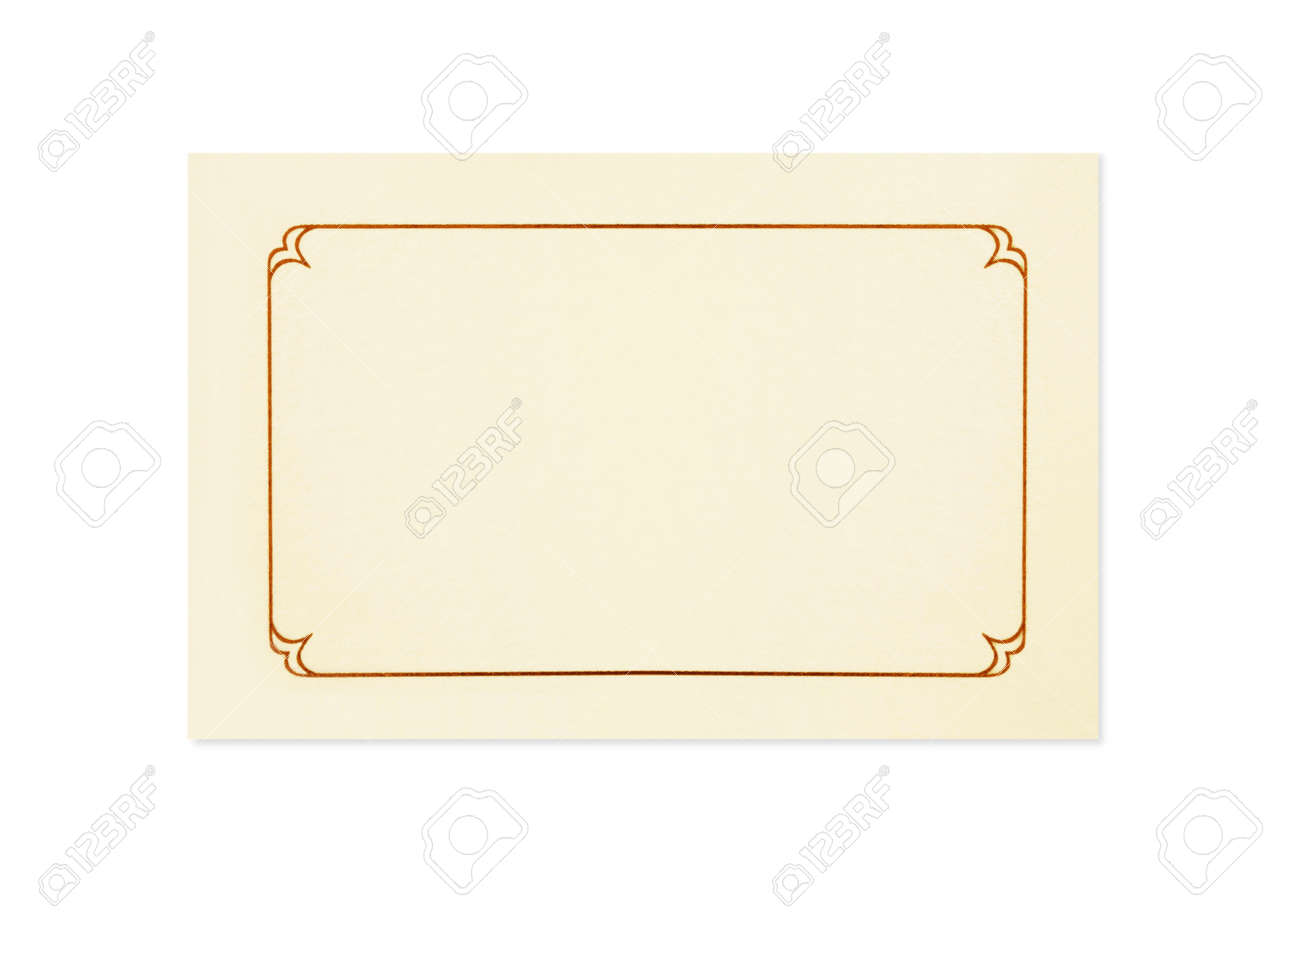 Blank Card, Isolated On White. Could Be A Place Card, Name Card ...